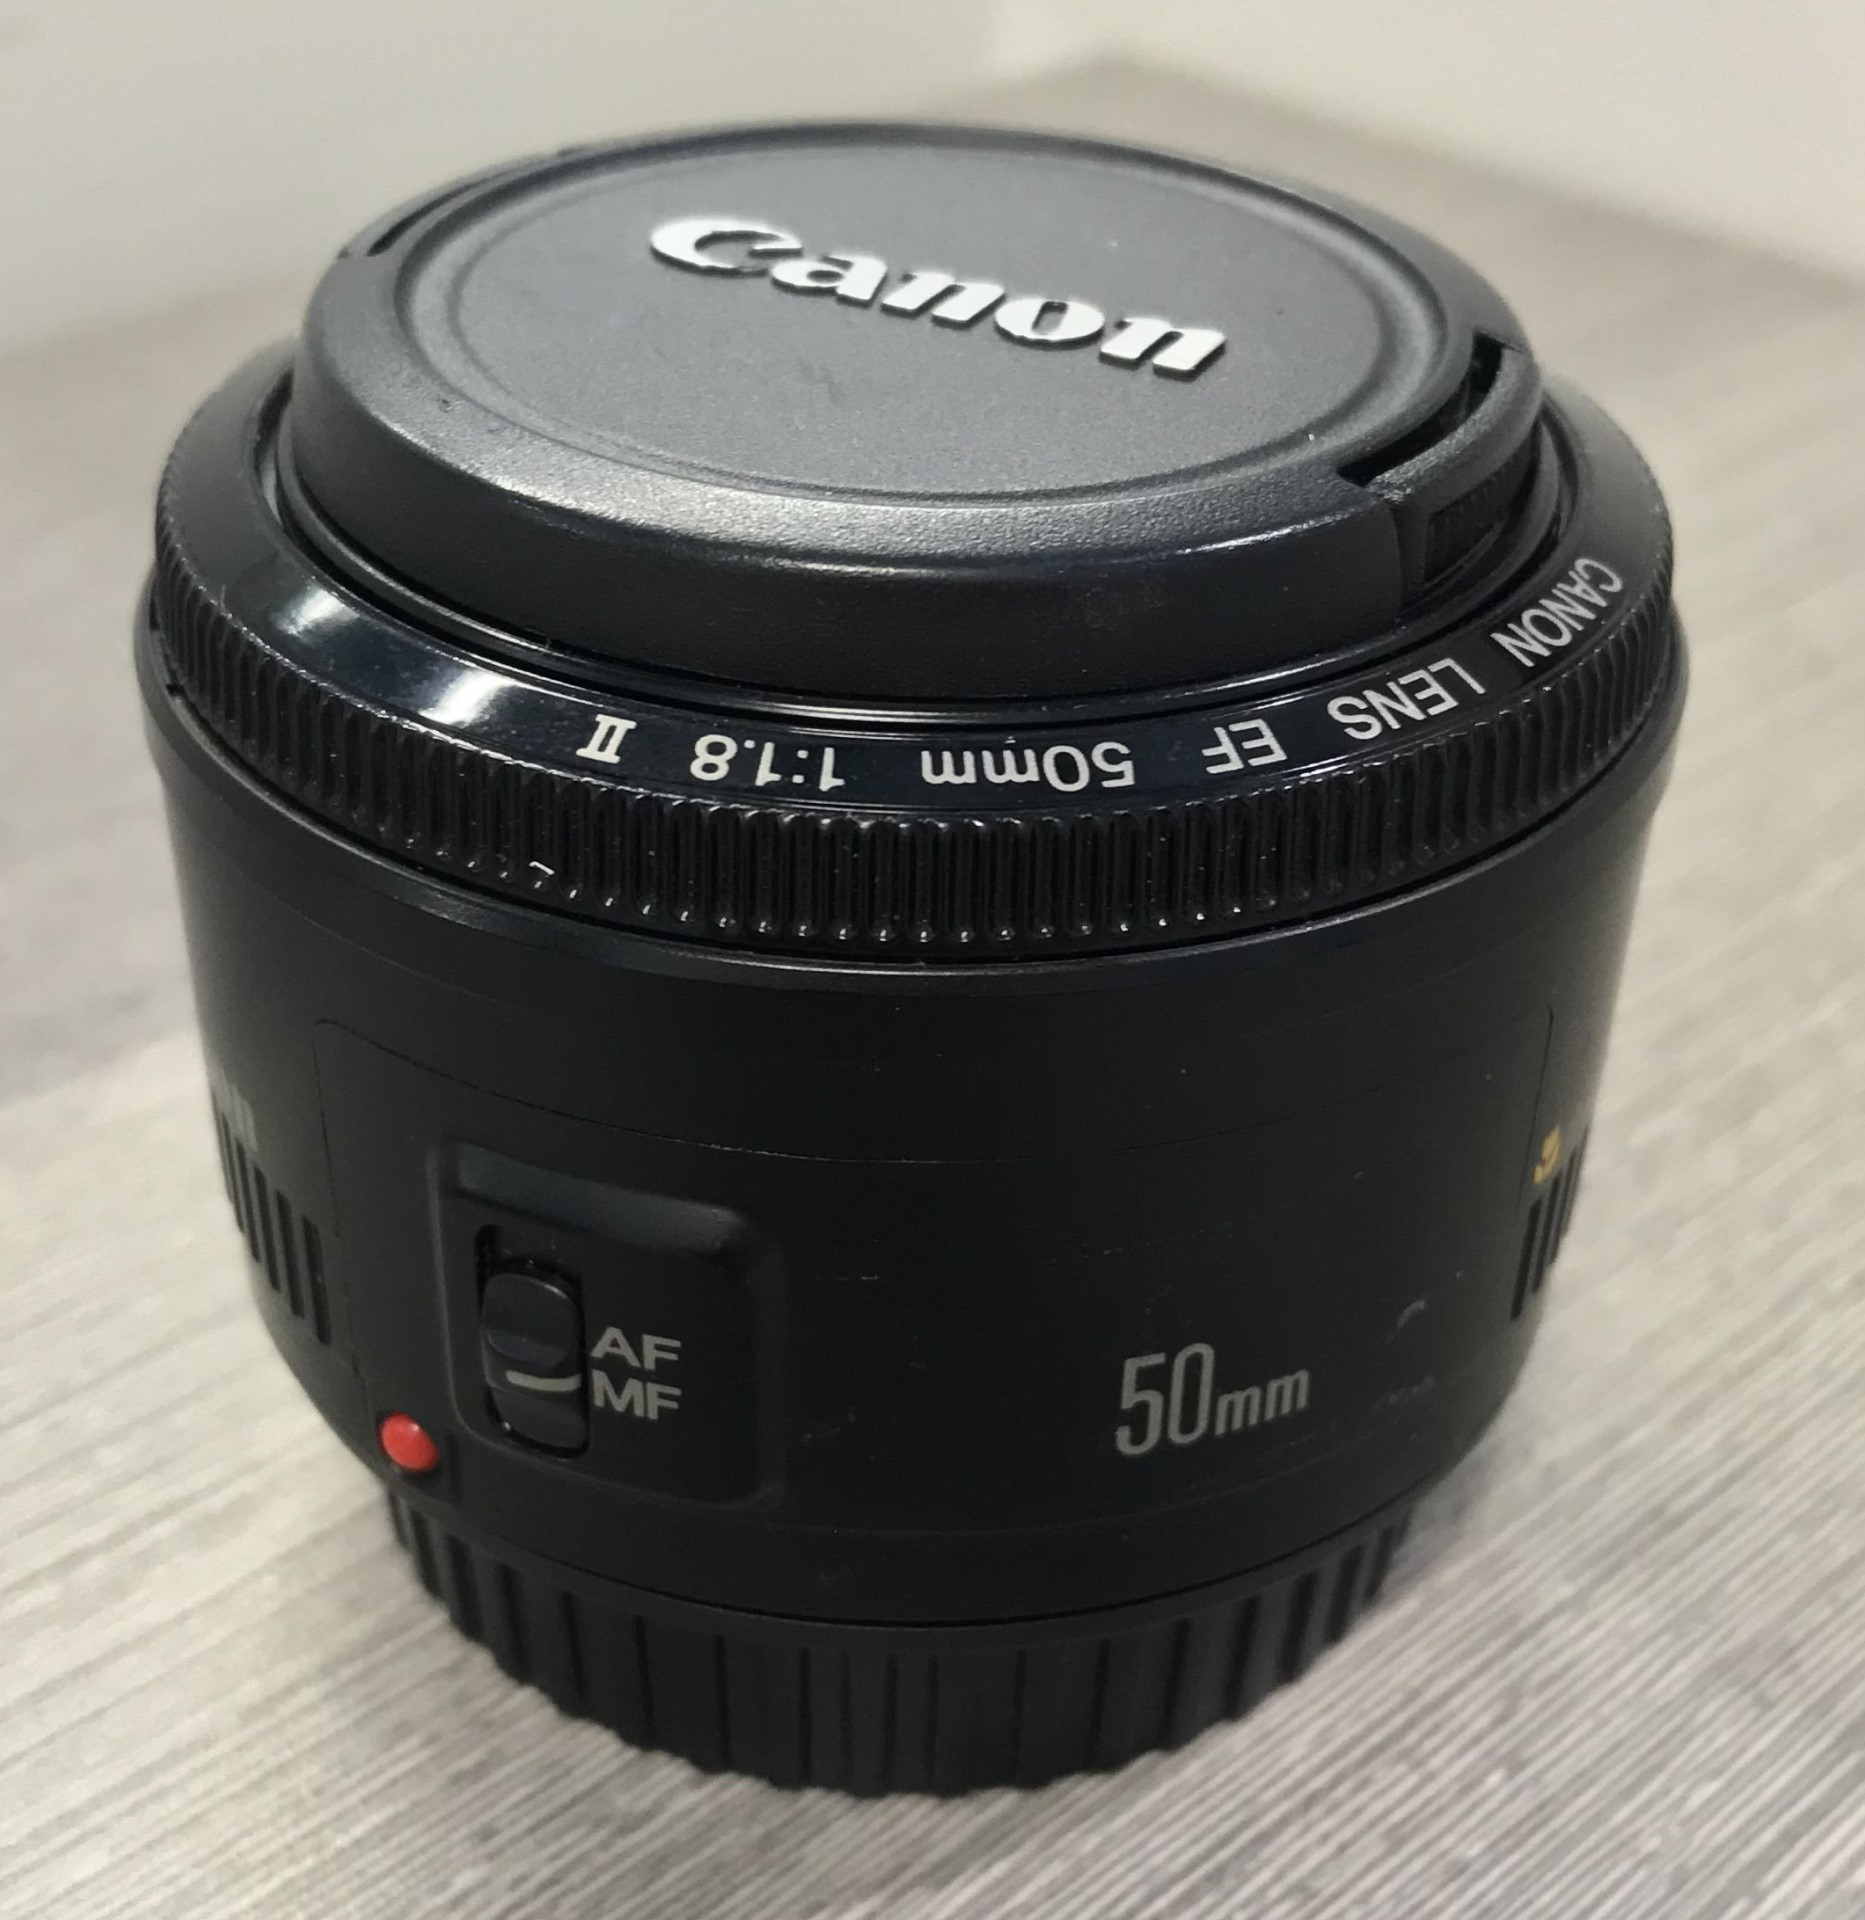 Canon 50mm camera lens picture